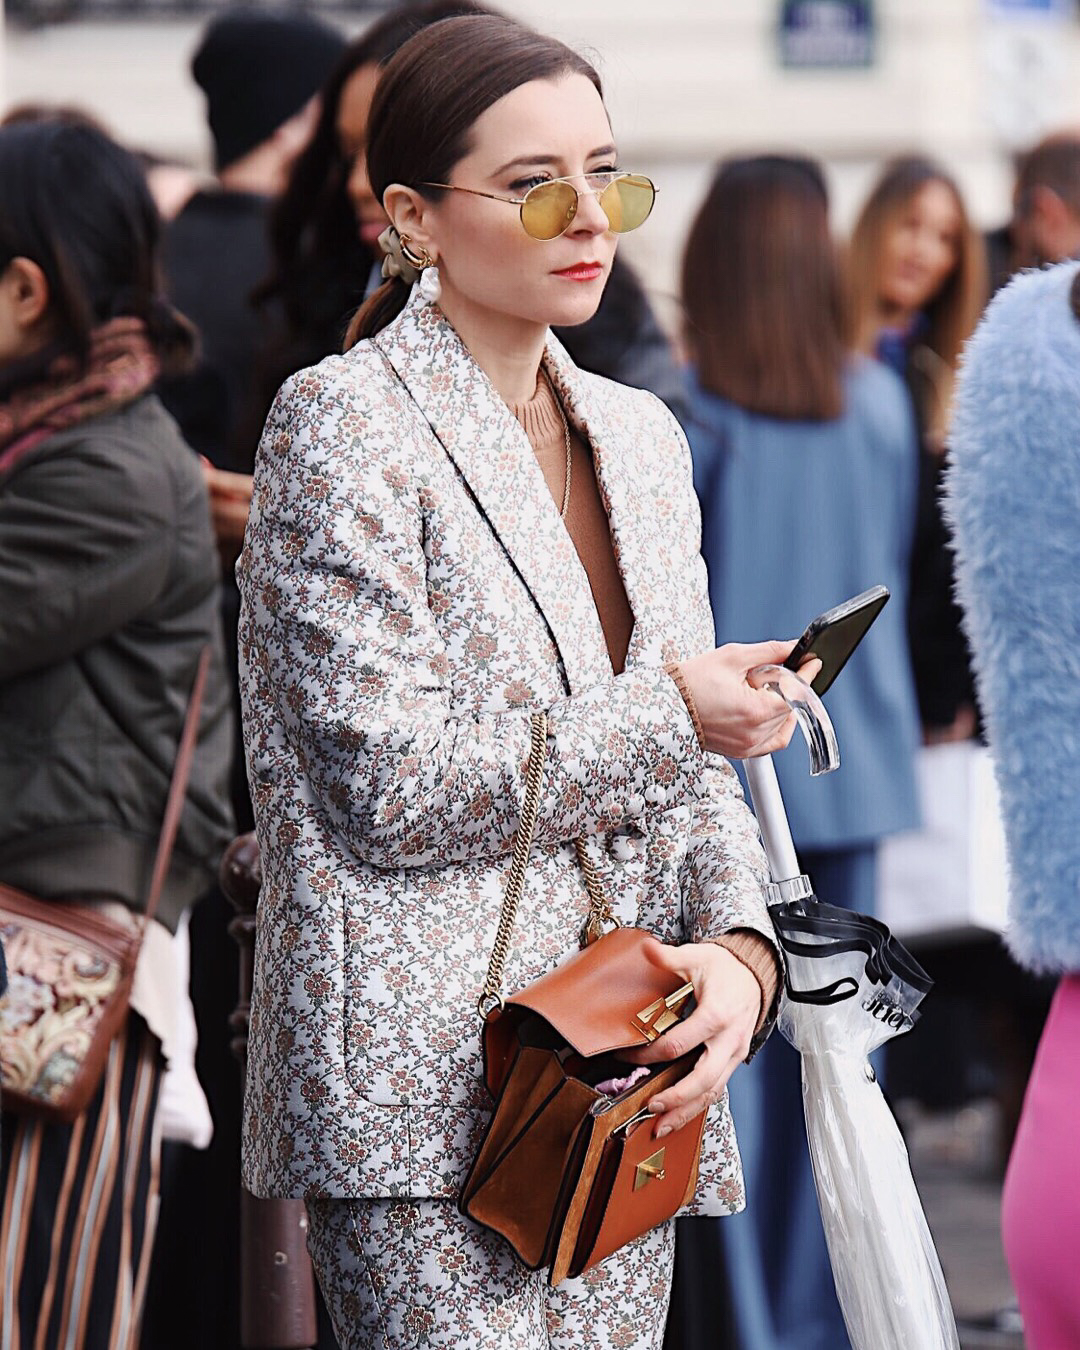 Best Street Style Paris Fashion Week Mars 2019 Julia Comil / French Fashion Blogger in Los Angeles Outfit for PFW Fall Winter 2019 show - sezane suit, sunglasses Alhem, earrings Chloe via Farfetch, givanchy GV3 small bag